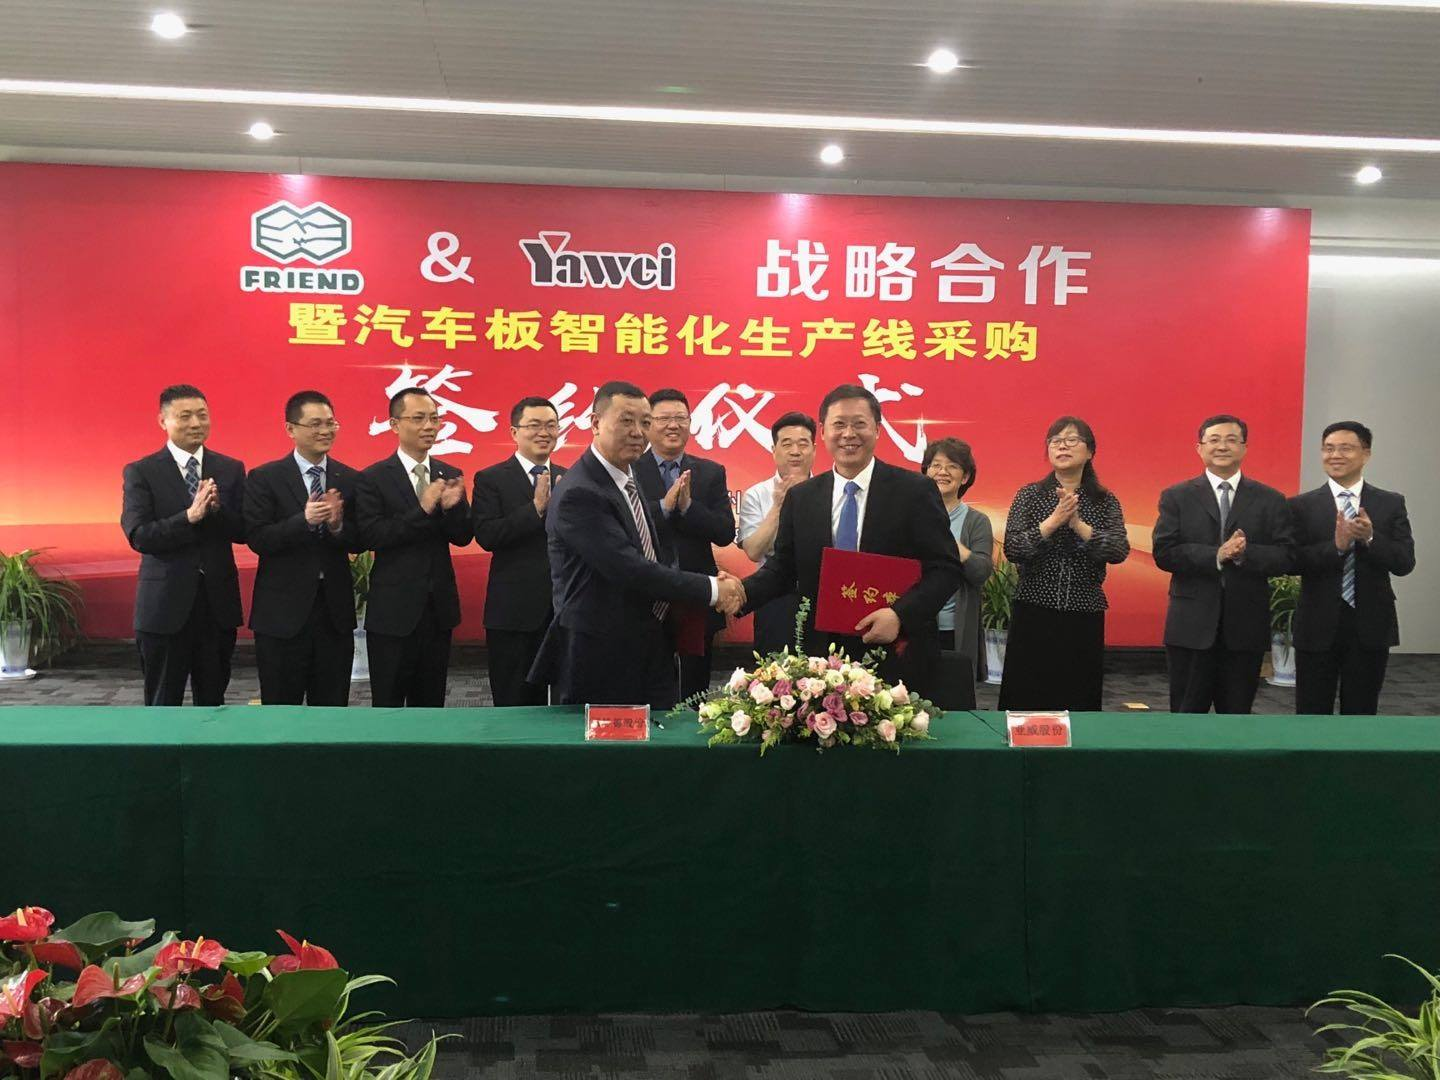 Hand in Hand with FRIEND, Yawei got order of RMB 162 million Yuan intelligent production line for automobile sheets